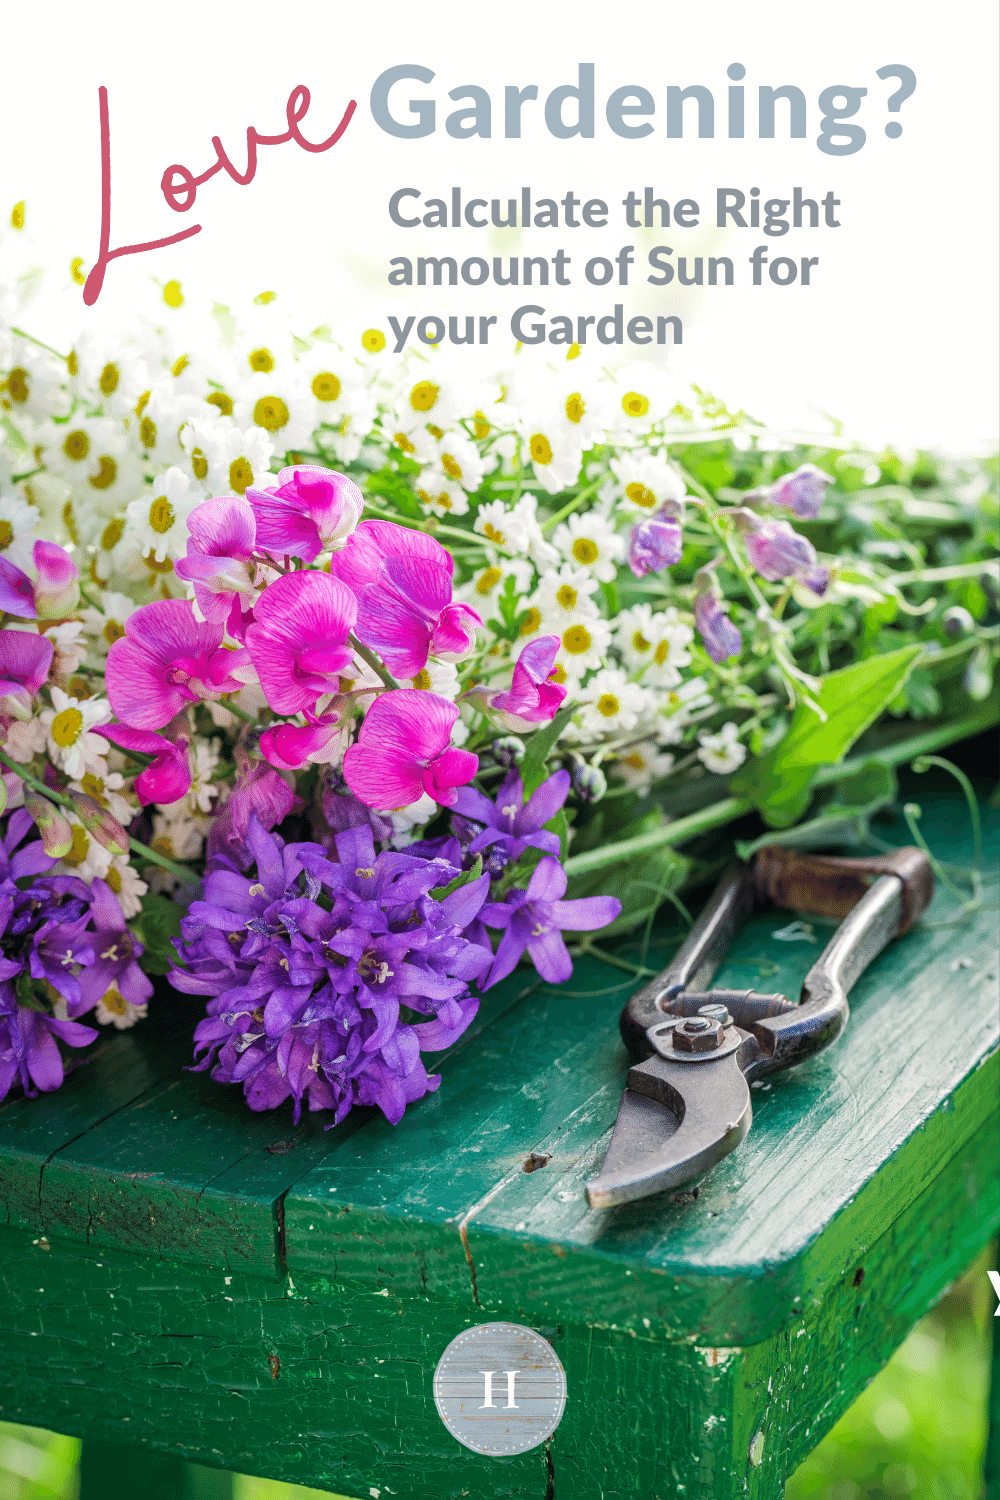 Love gardening but not sure how to tell if your garden will get the right amount of sun? Check out this blog post for some gardening tips to ensure your backyard vegetable garden has the right amount of sunlight.